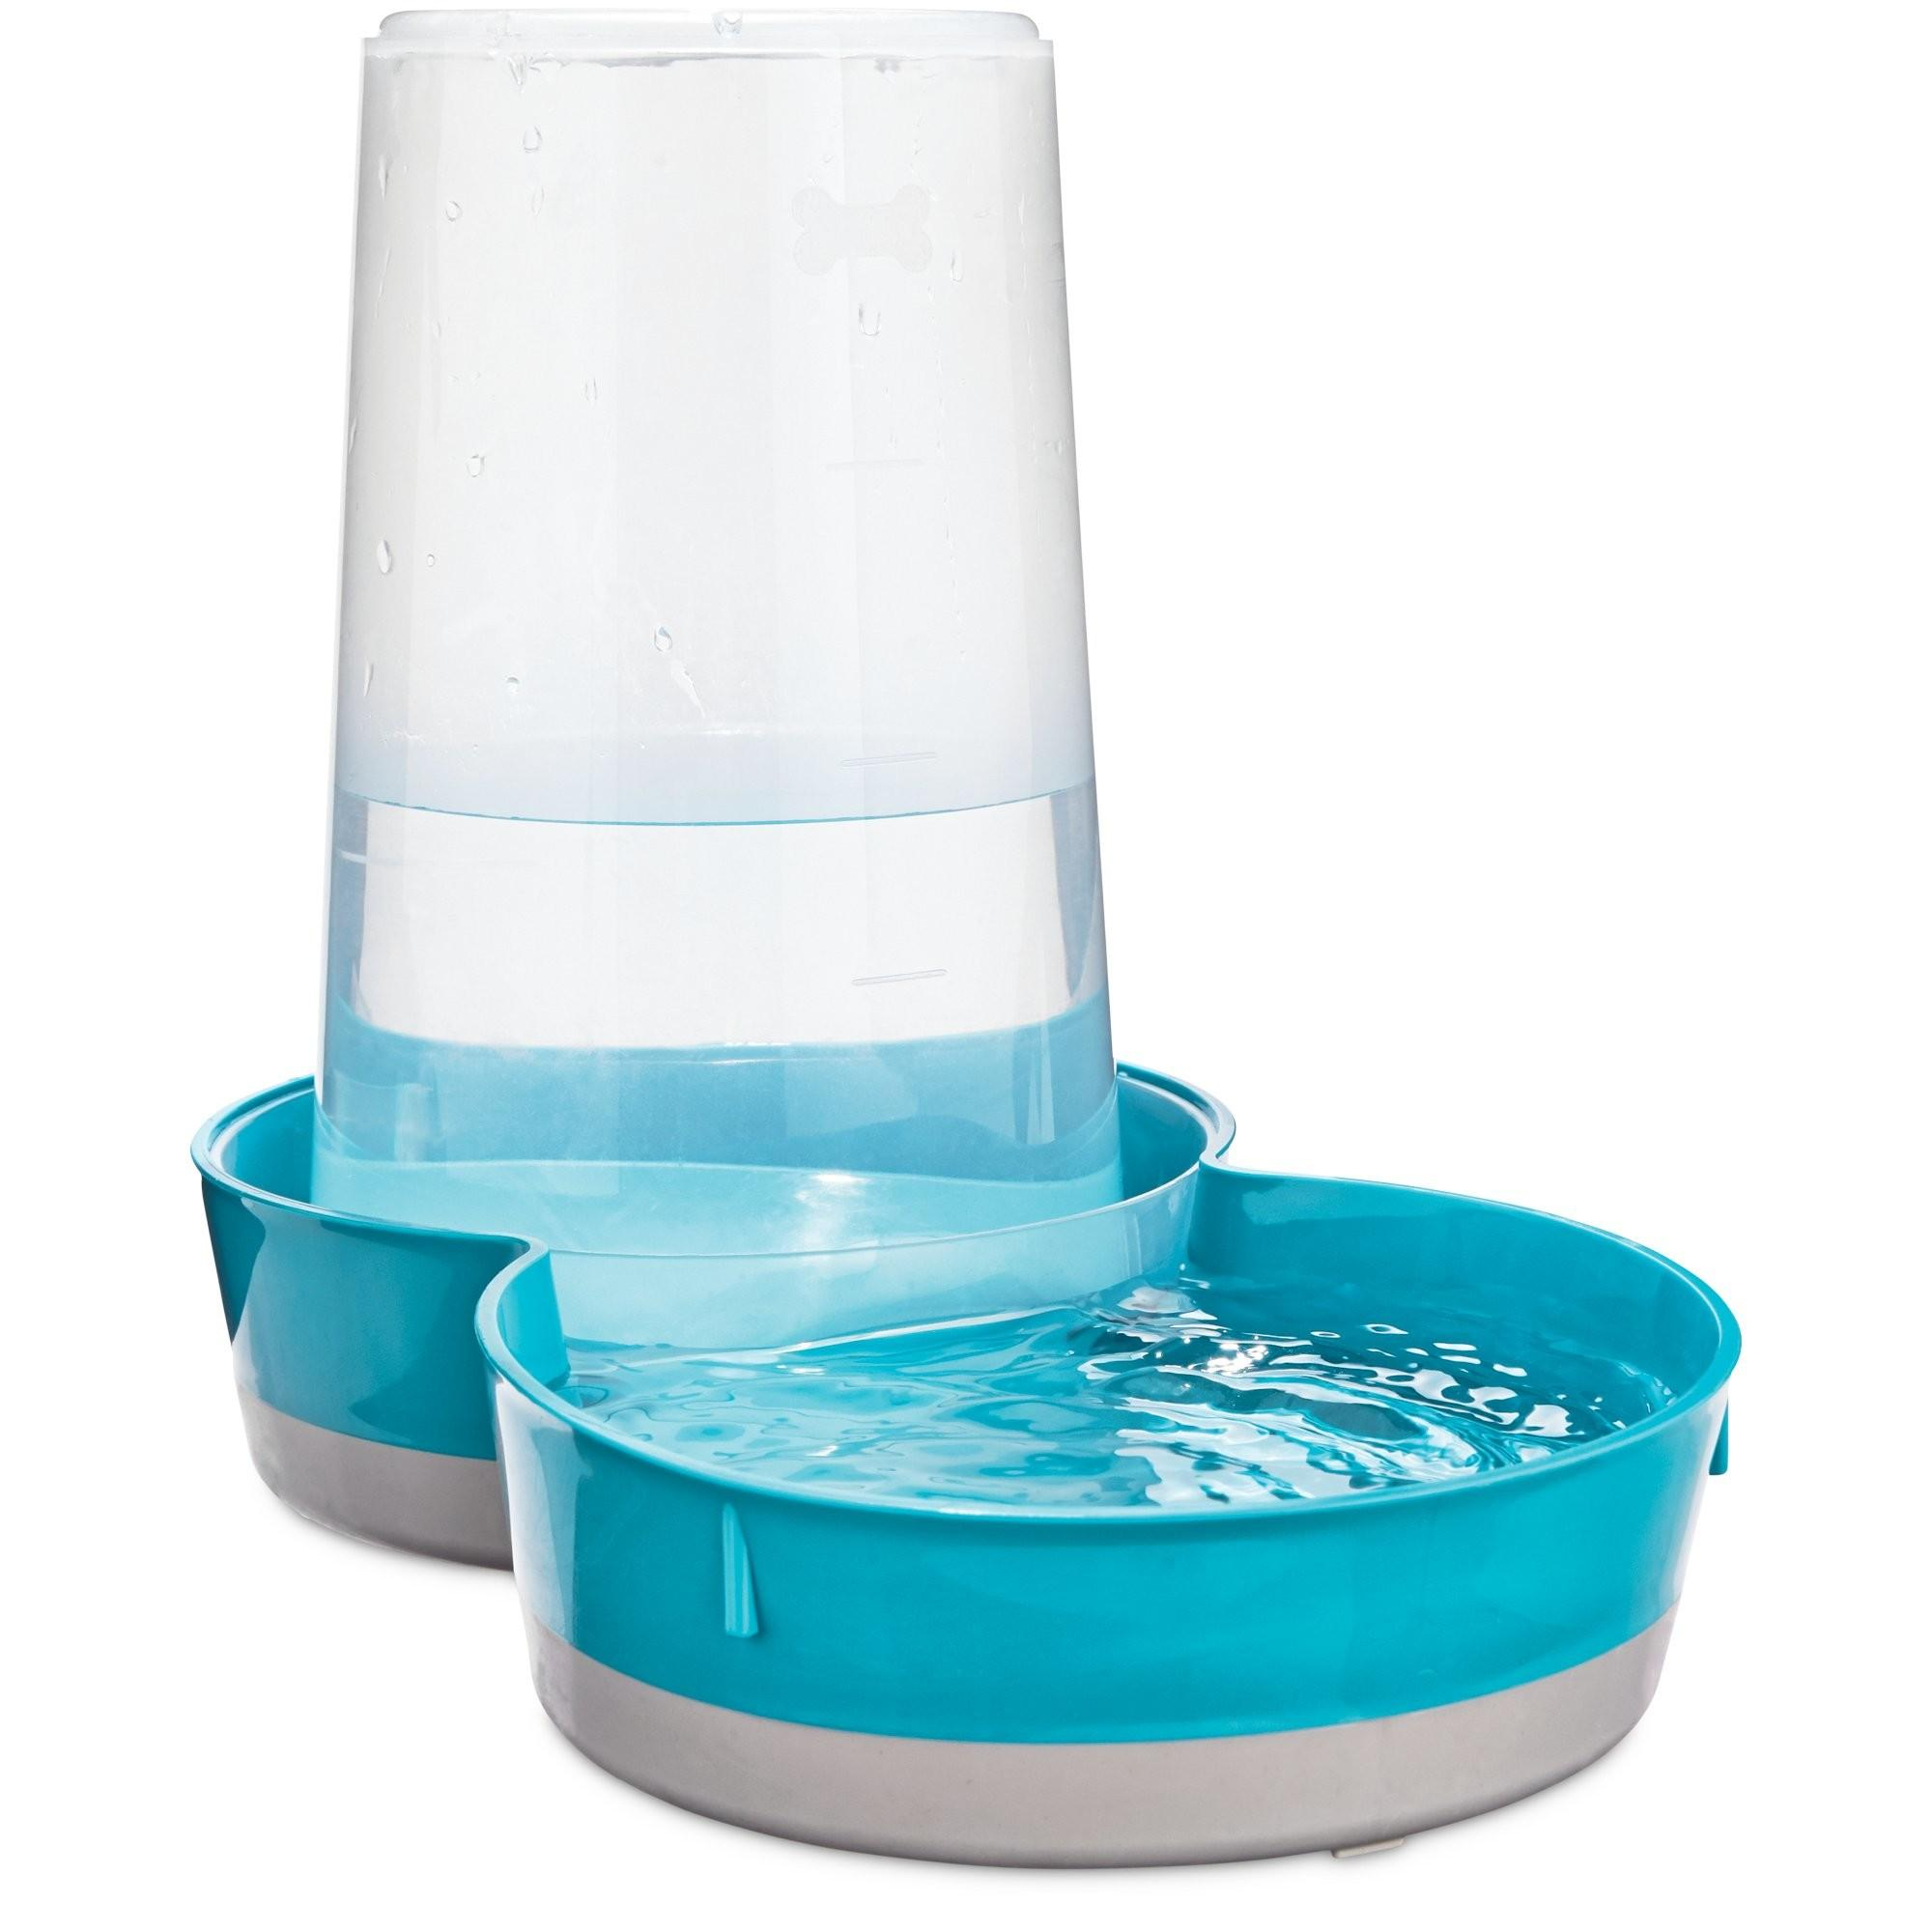 Gravity Feeder Waterer Pets Blue Petco